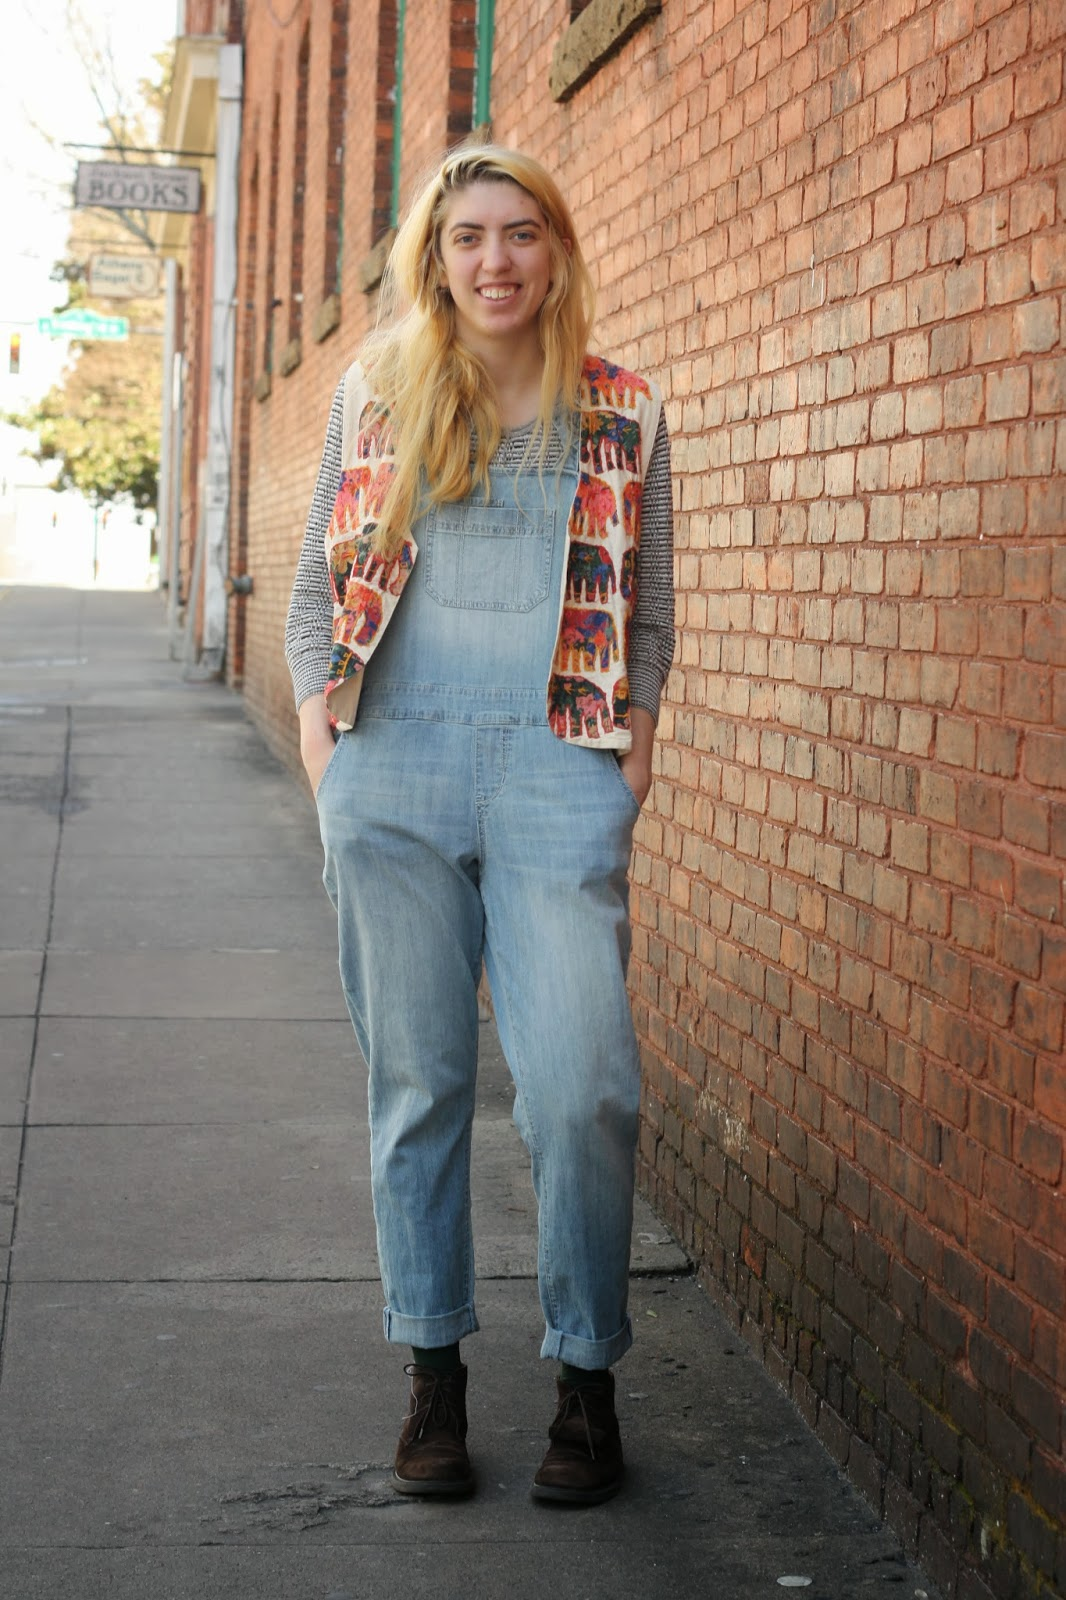 Maddie Zerkel - UGA Athens Street Style wears American Rag jean overalls with J.Crew boots and an elephant cardigan